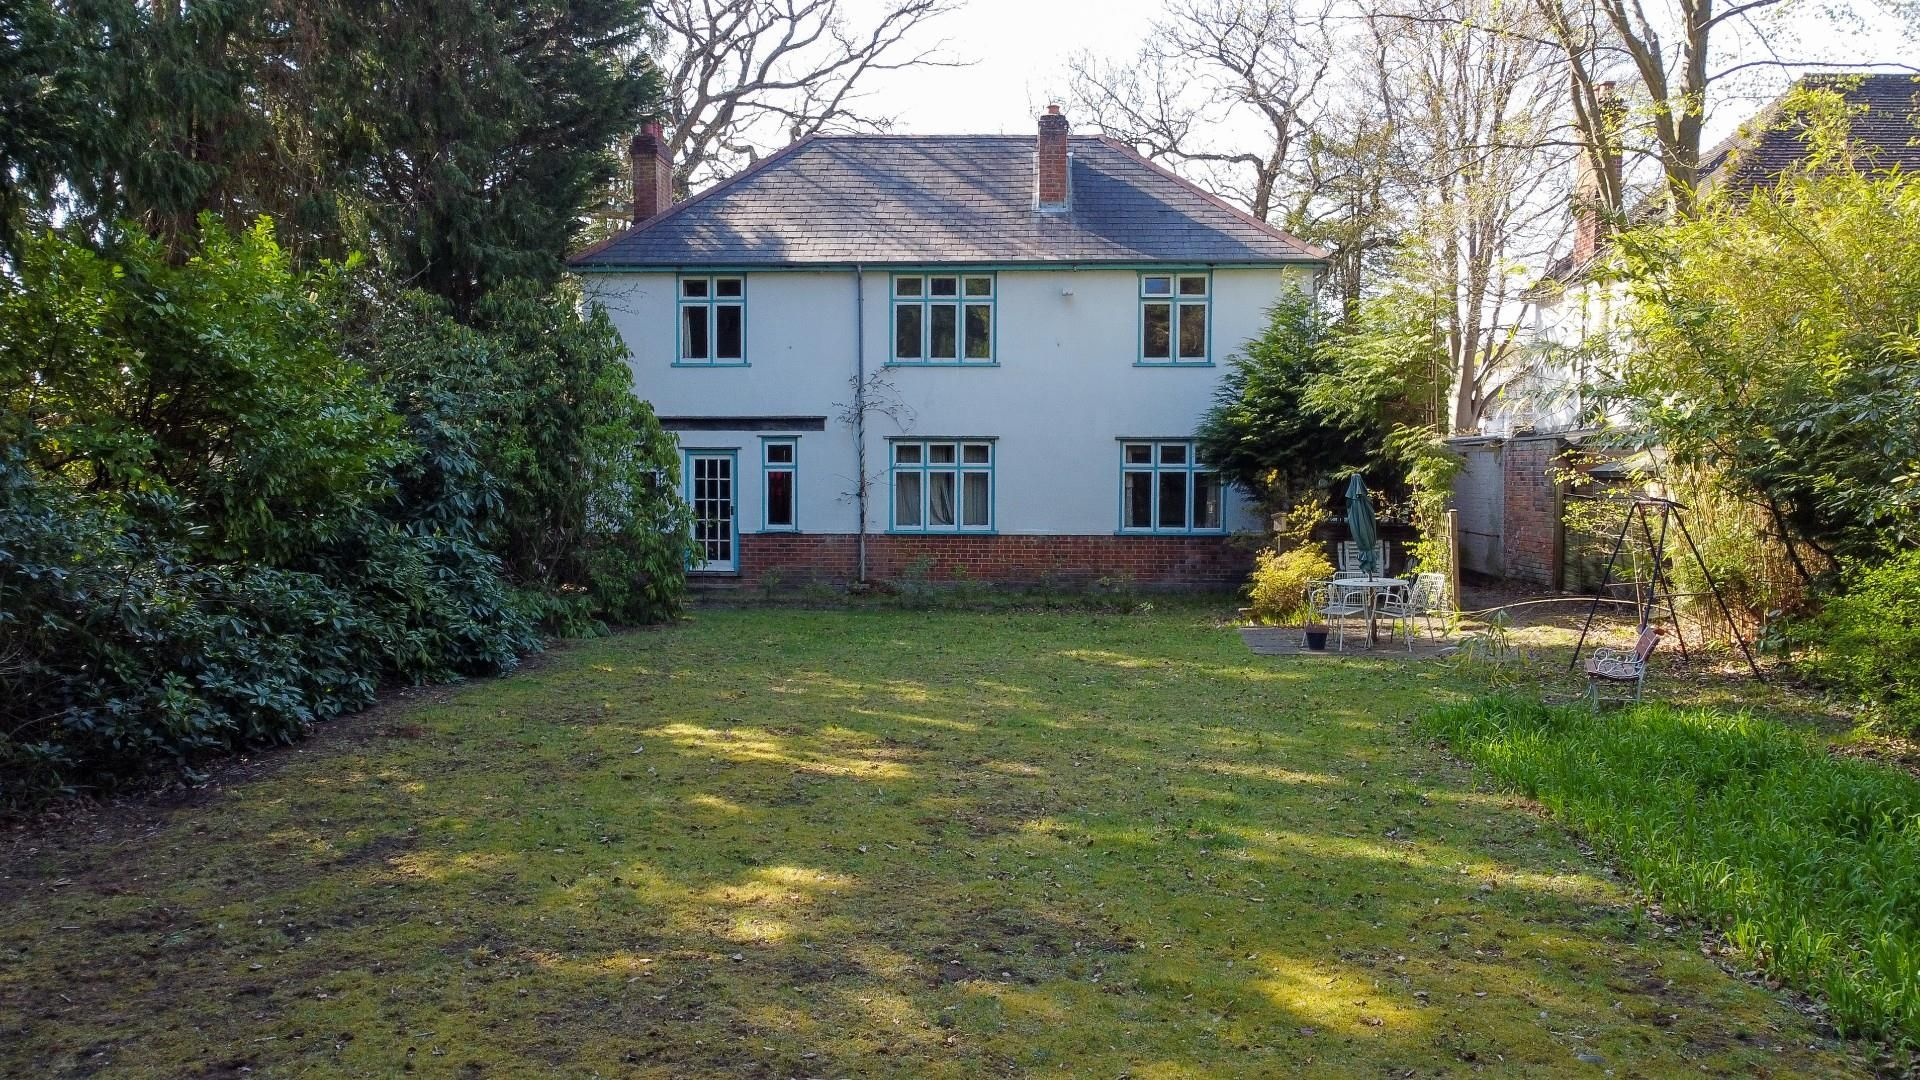 4 bed house for sale, GU15